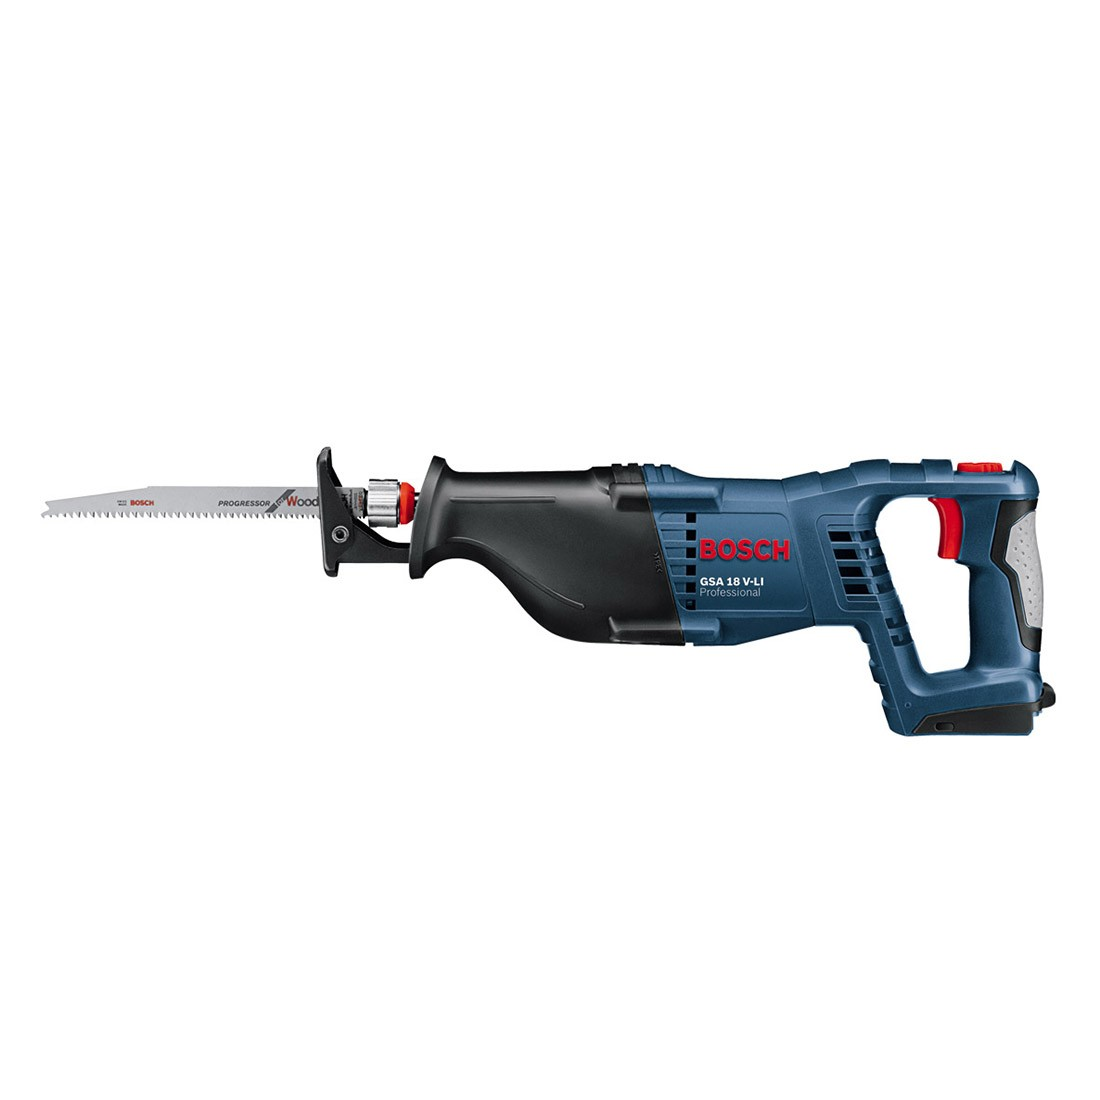 636e4027715 Bosch GSA 18 V-LI 18v Professional Reciprocating Saw Body Only in L ...